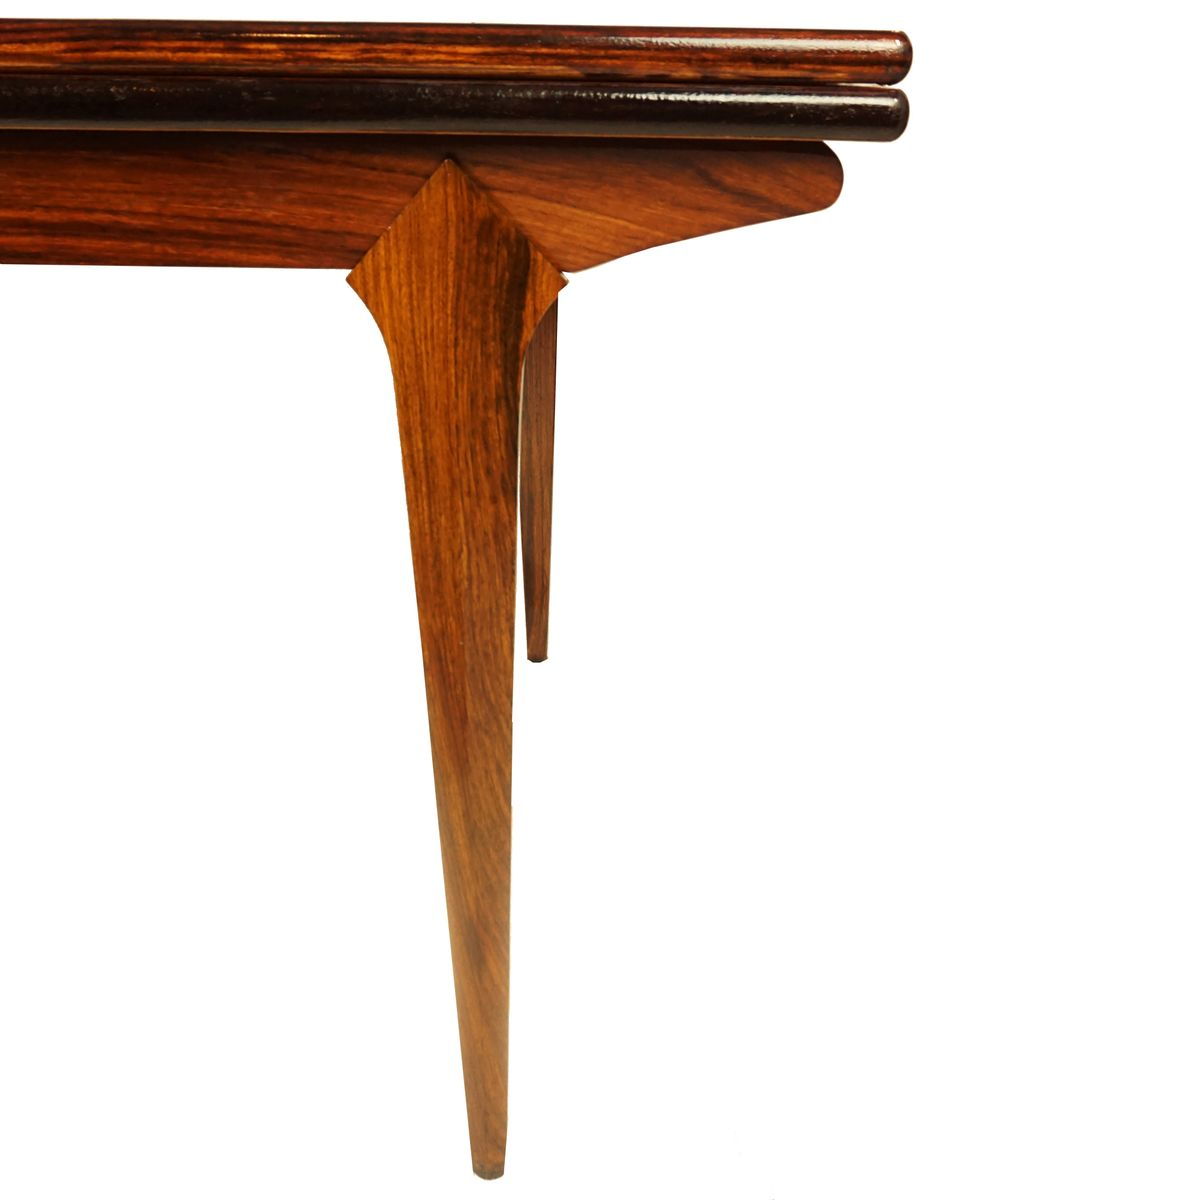 danish rosewood dining table with extension leaves for sale at pamono danish rosewood dining table with extension leaves 6 1 495 00 price per piece